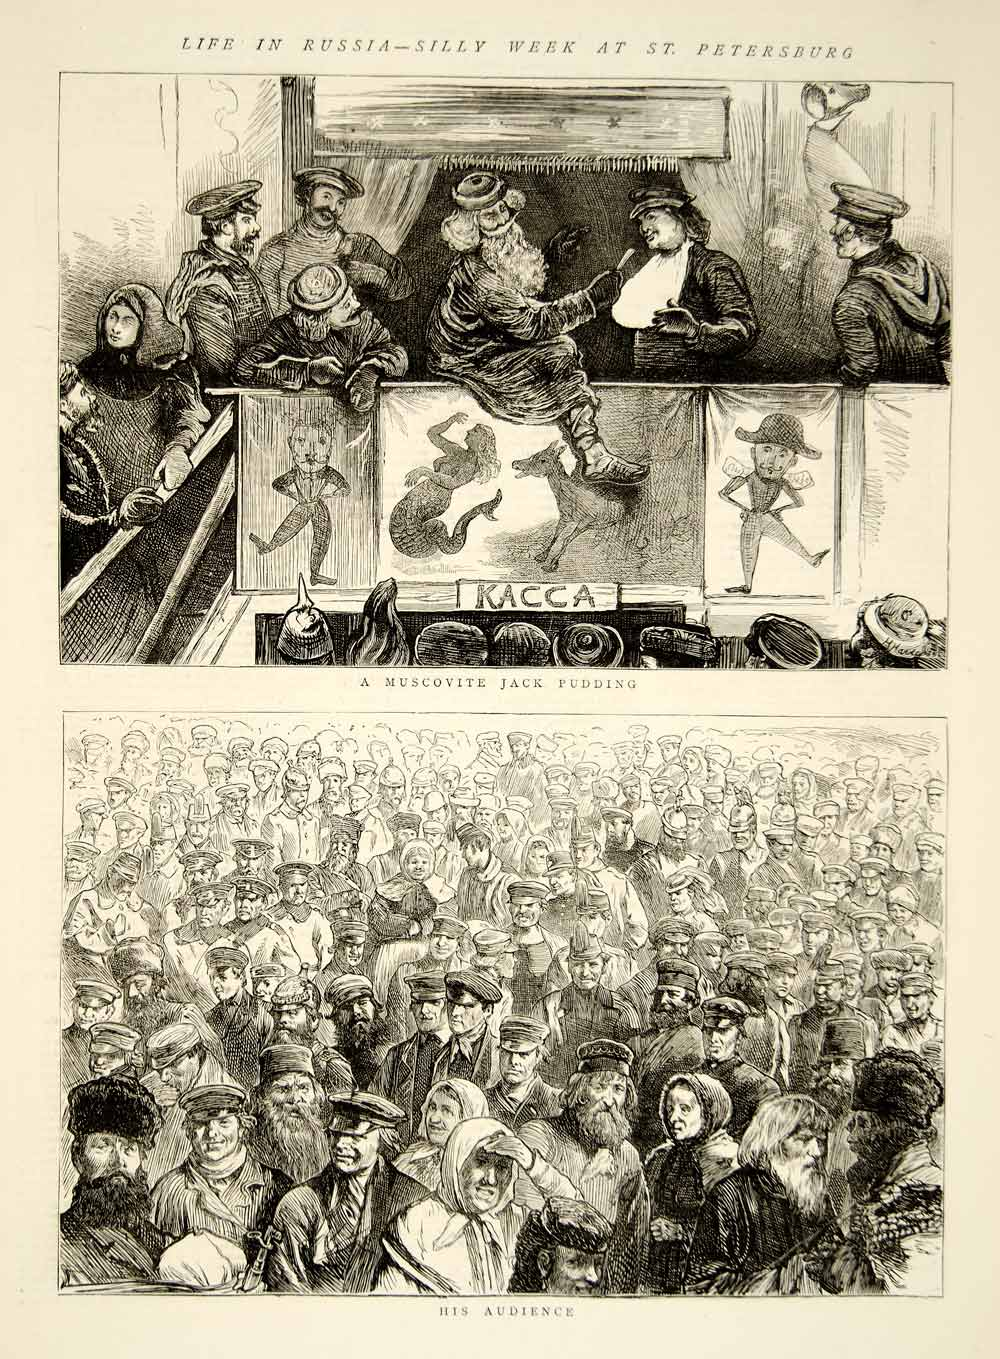 1874 Wood Engraving Art La Semaine Folle Carnival Fair St Petersburg Russia YTG8